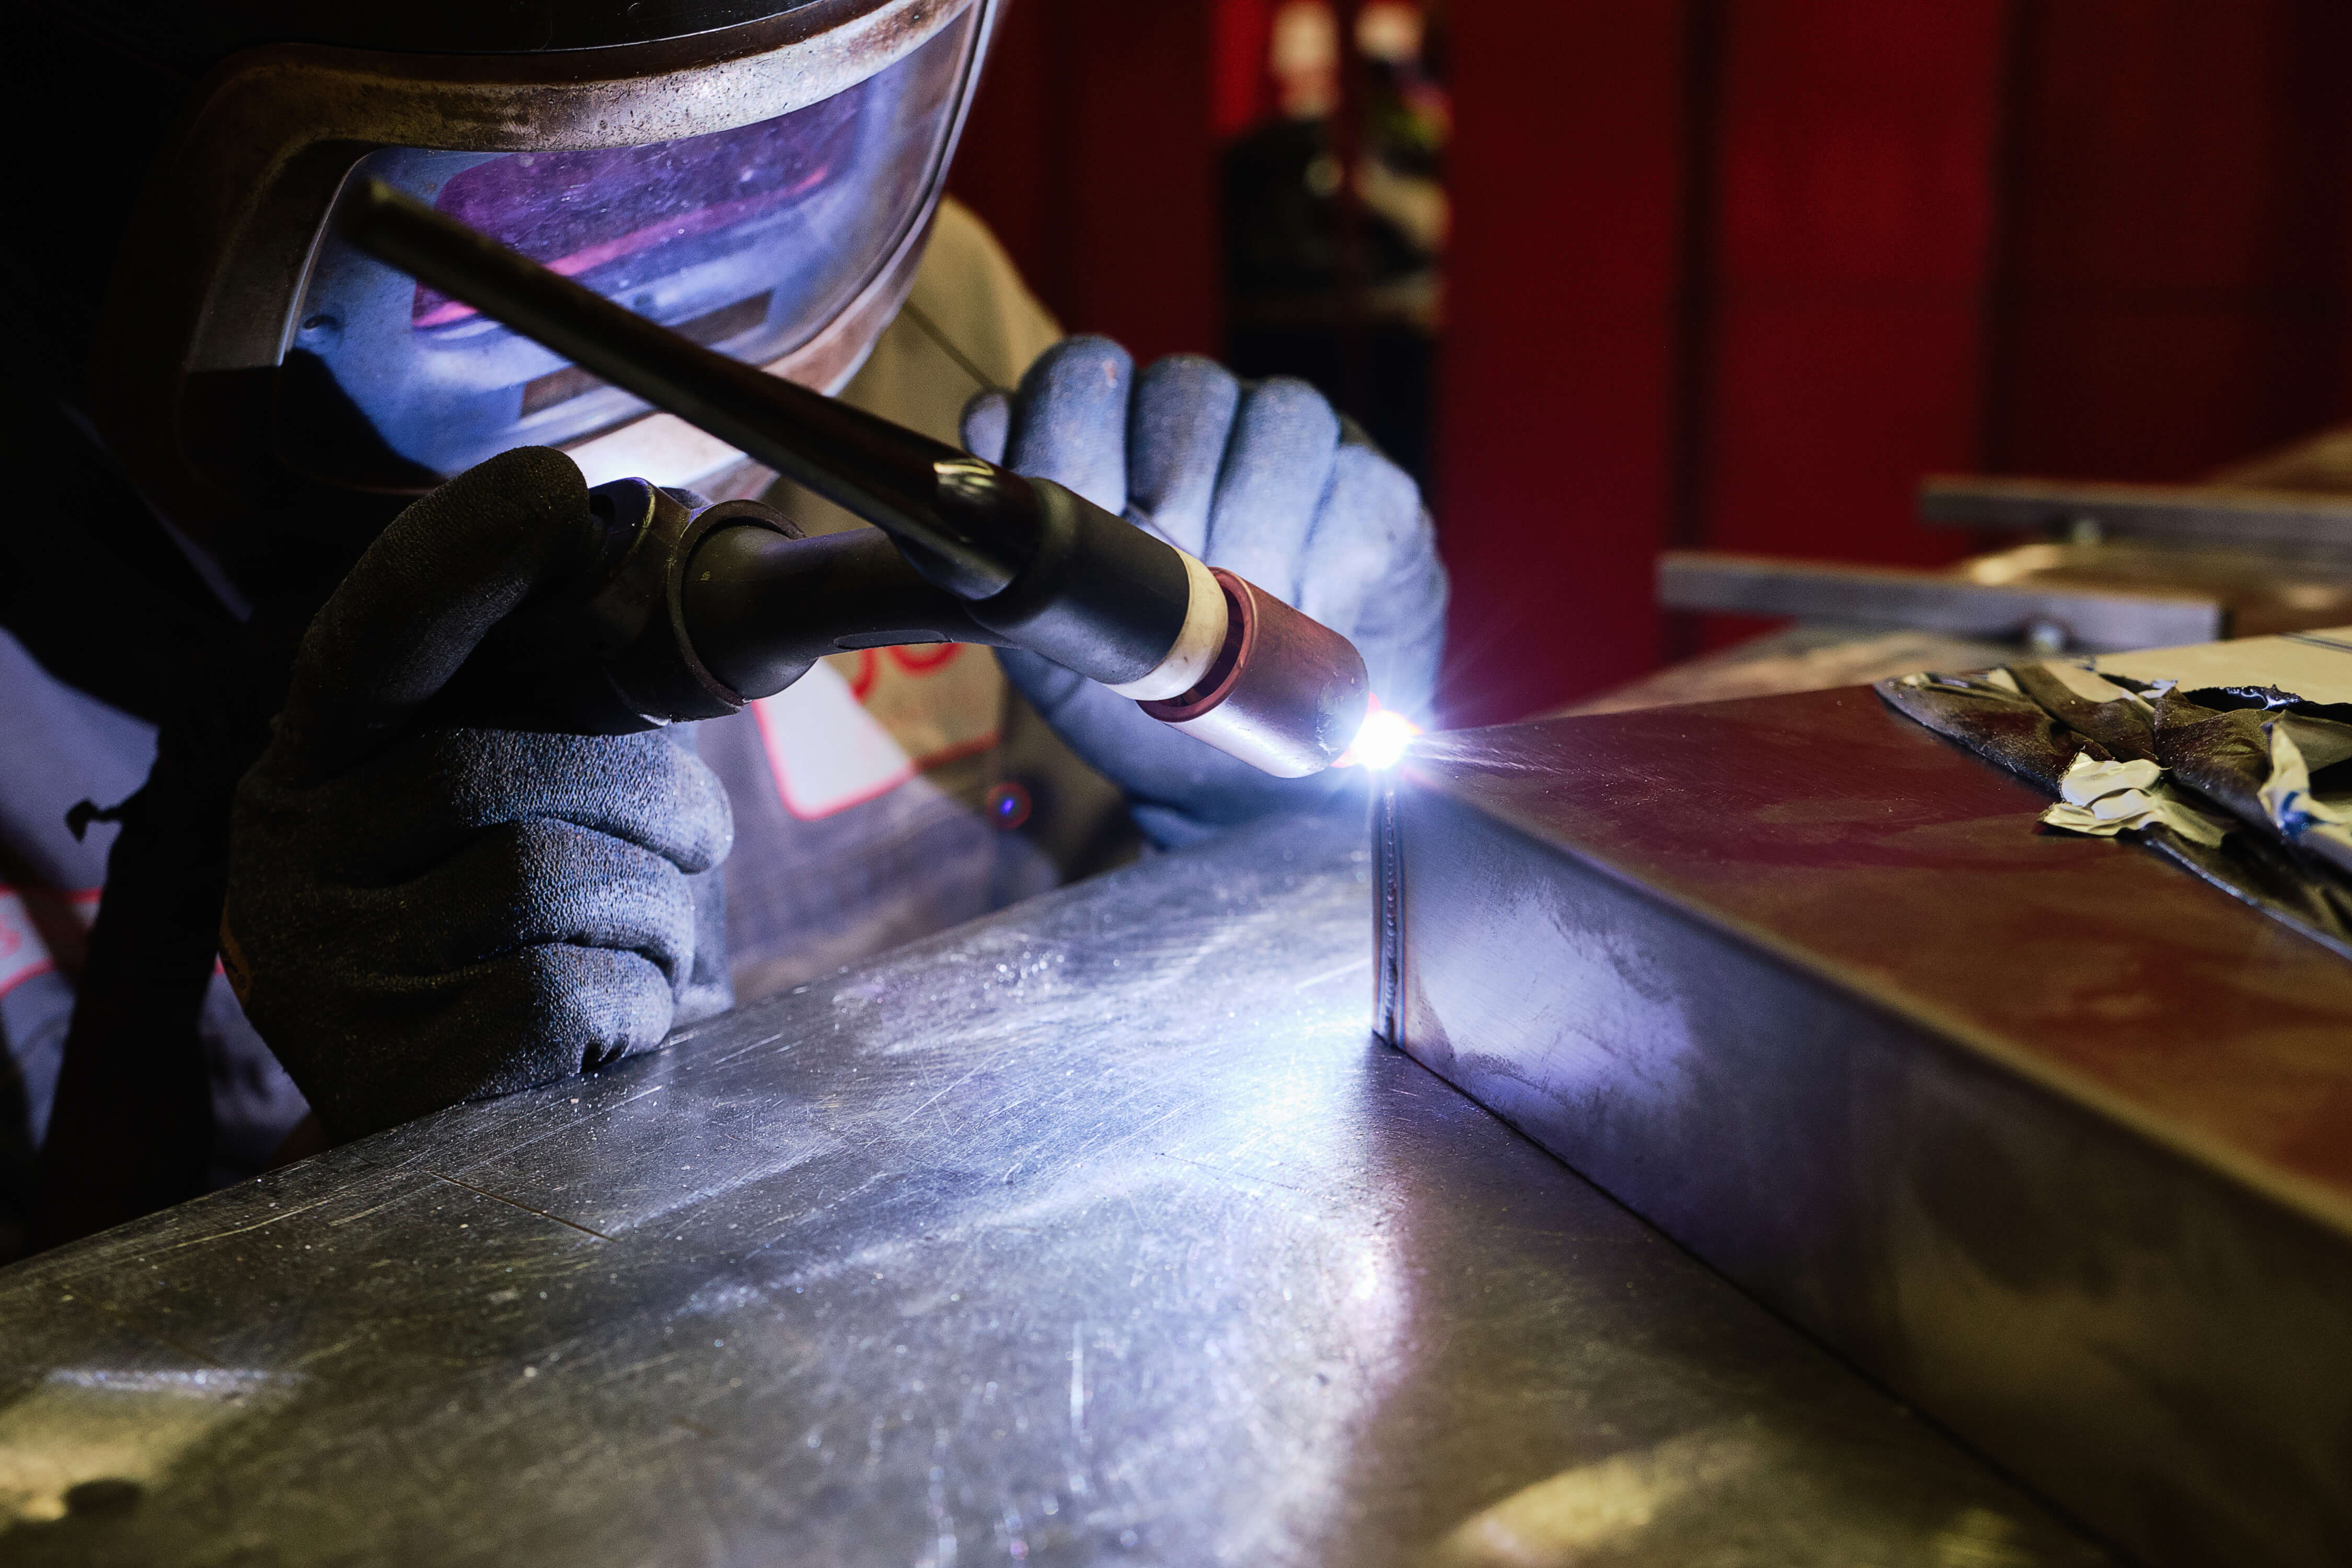 TIG Welding aluminium and steel sheets for metal fabrication projects